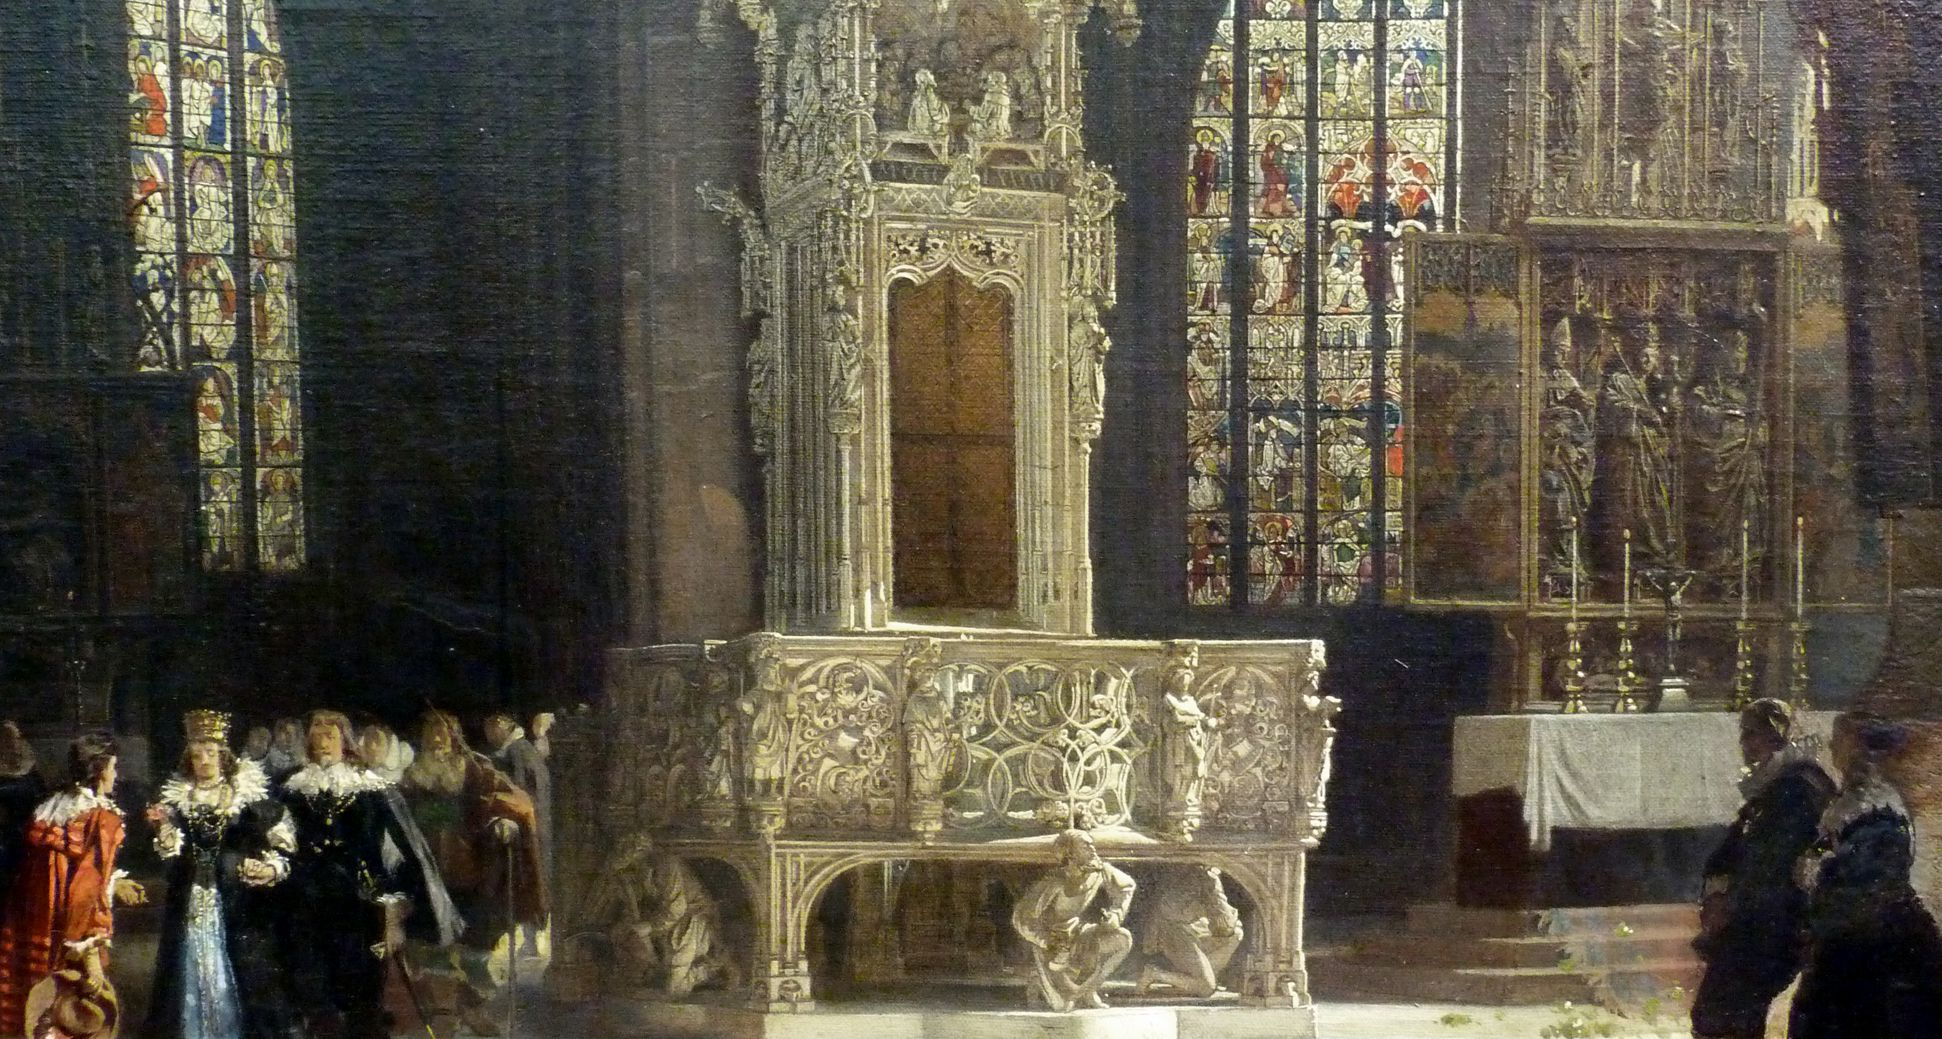 Tabernacle in St Lorenz-Church in Nuremberg with bridal procession form the early 17th century Detail view with bridal procession